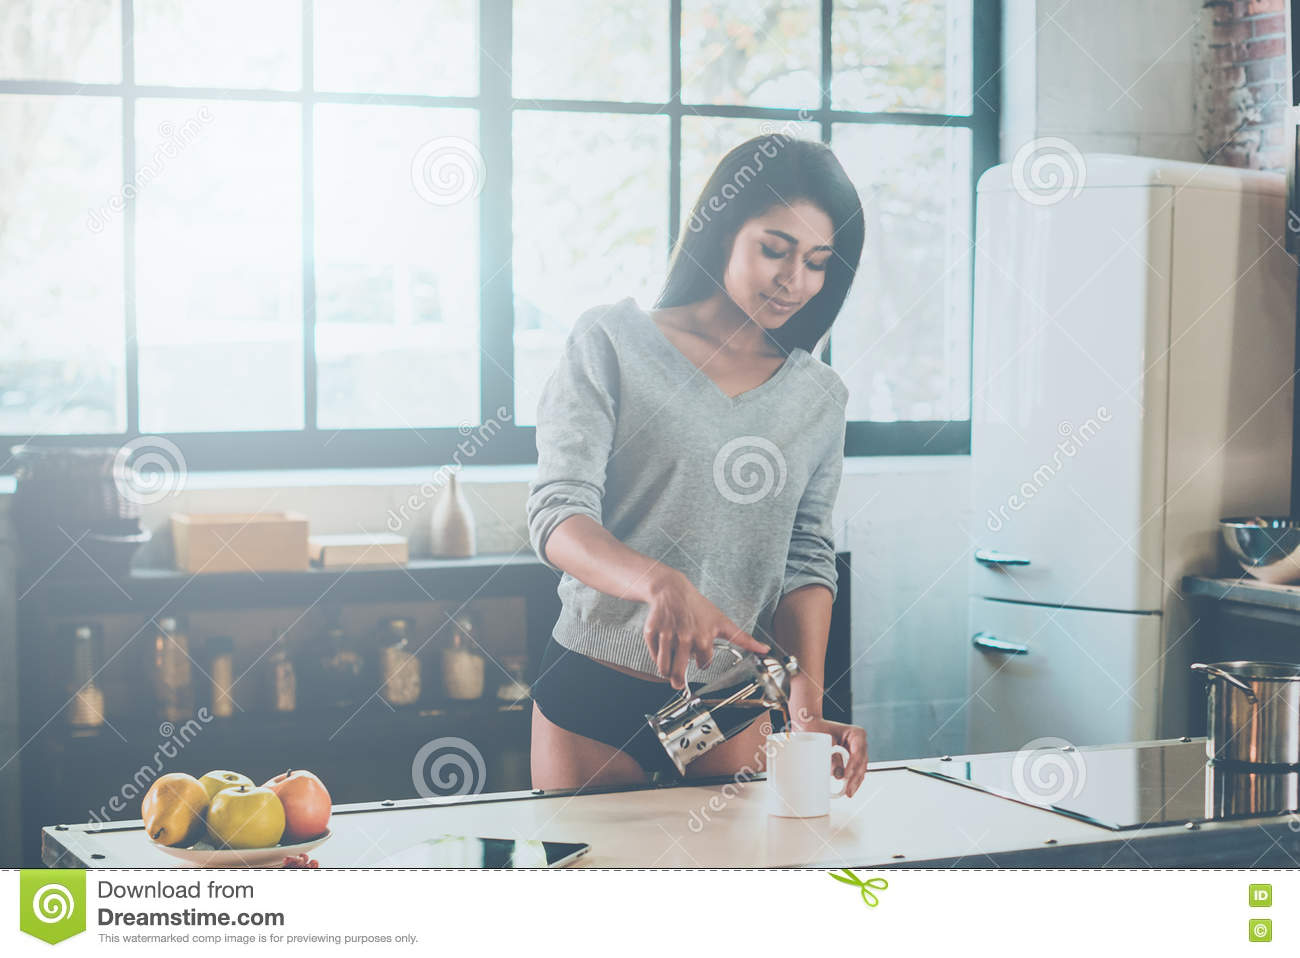 Staring Her Day With Fresh Coffee. Stock Photo - Image of candid ...